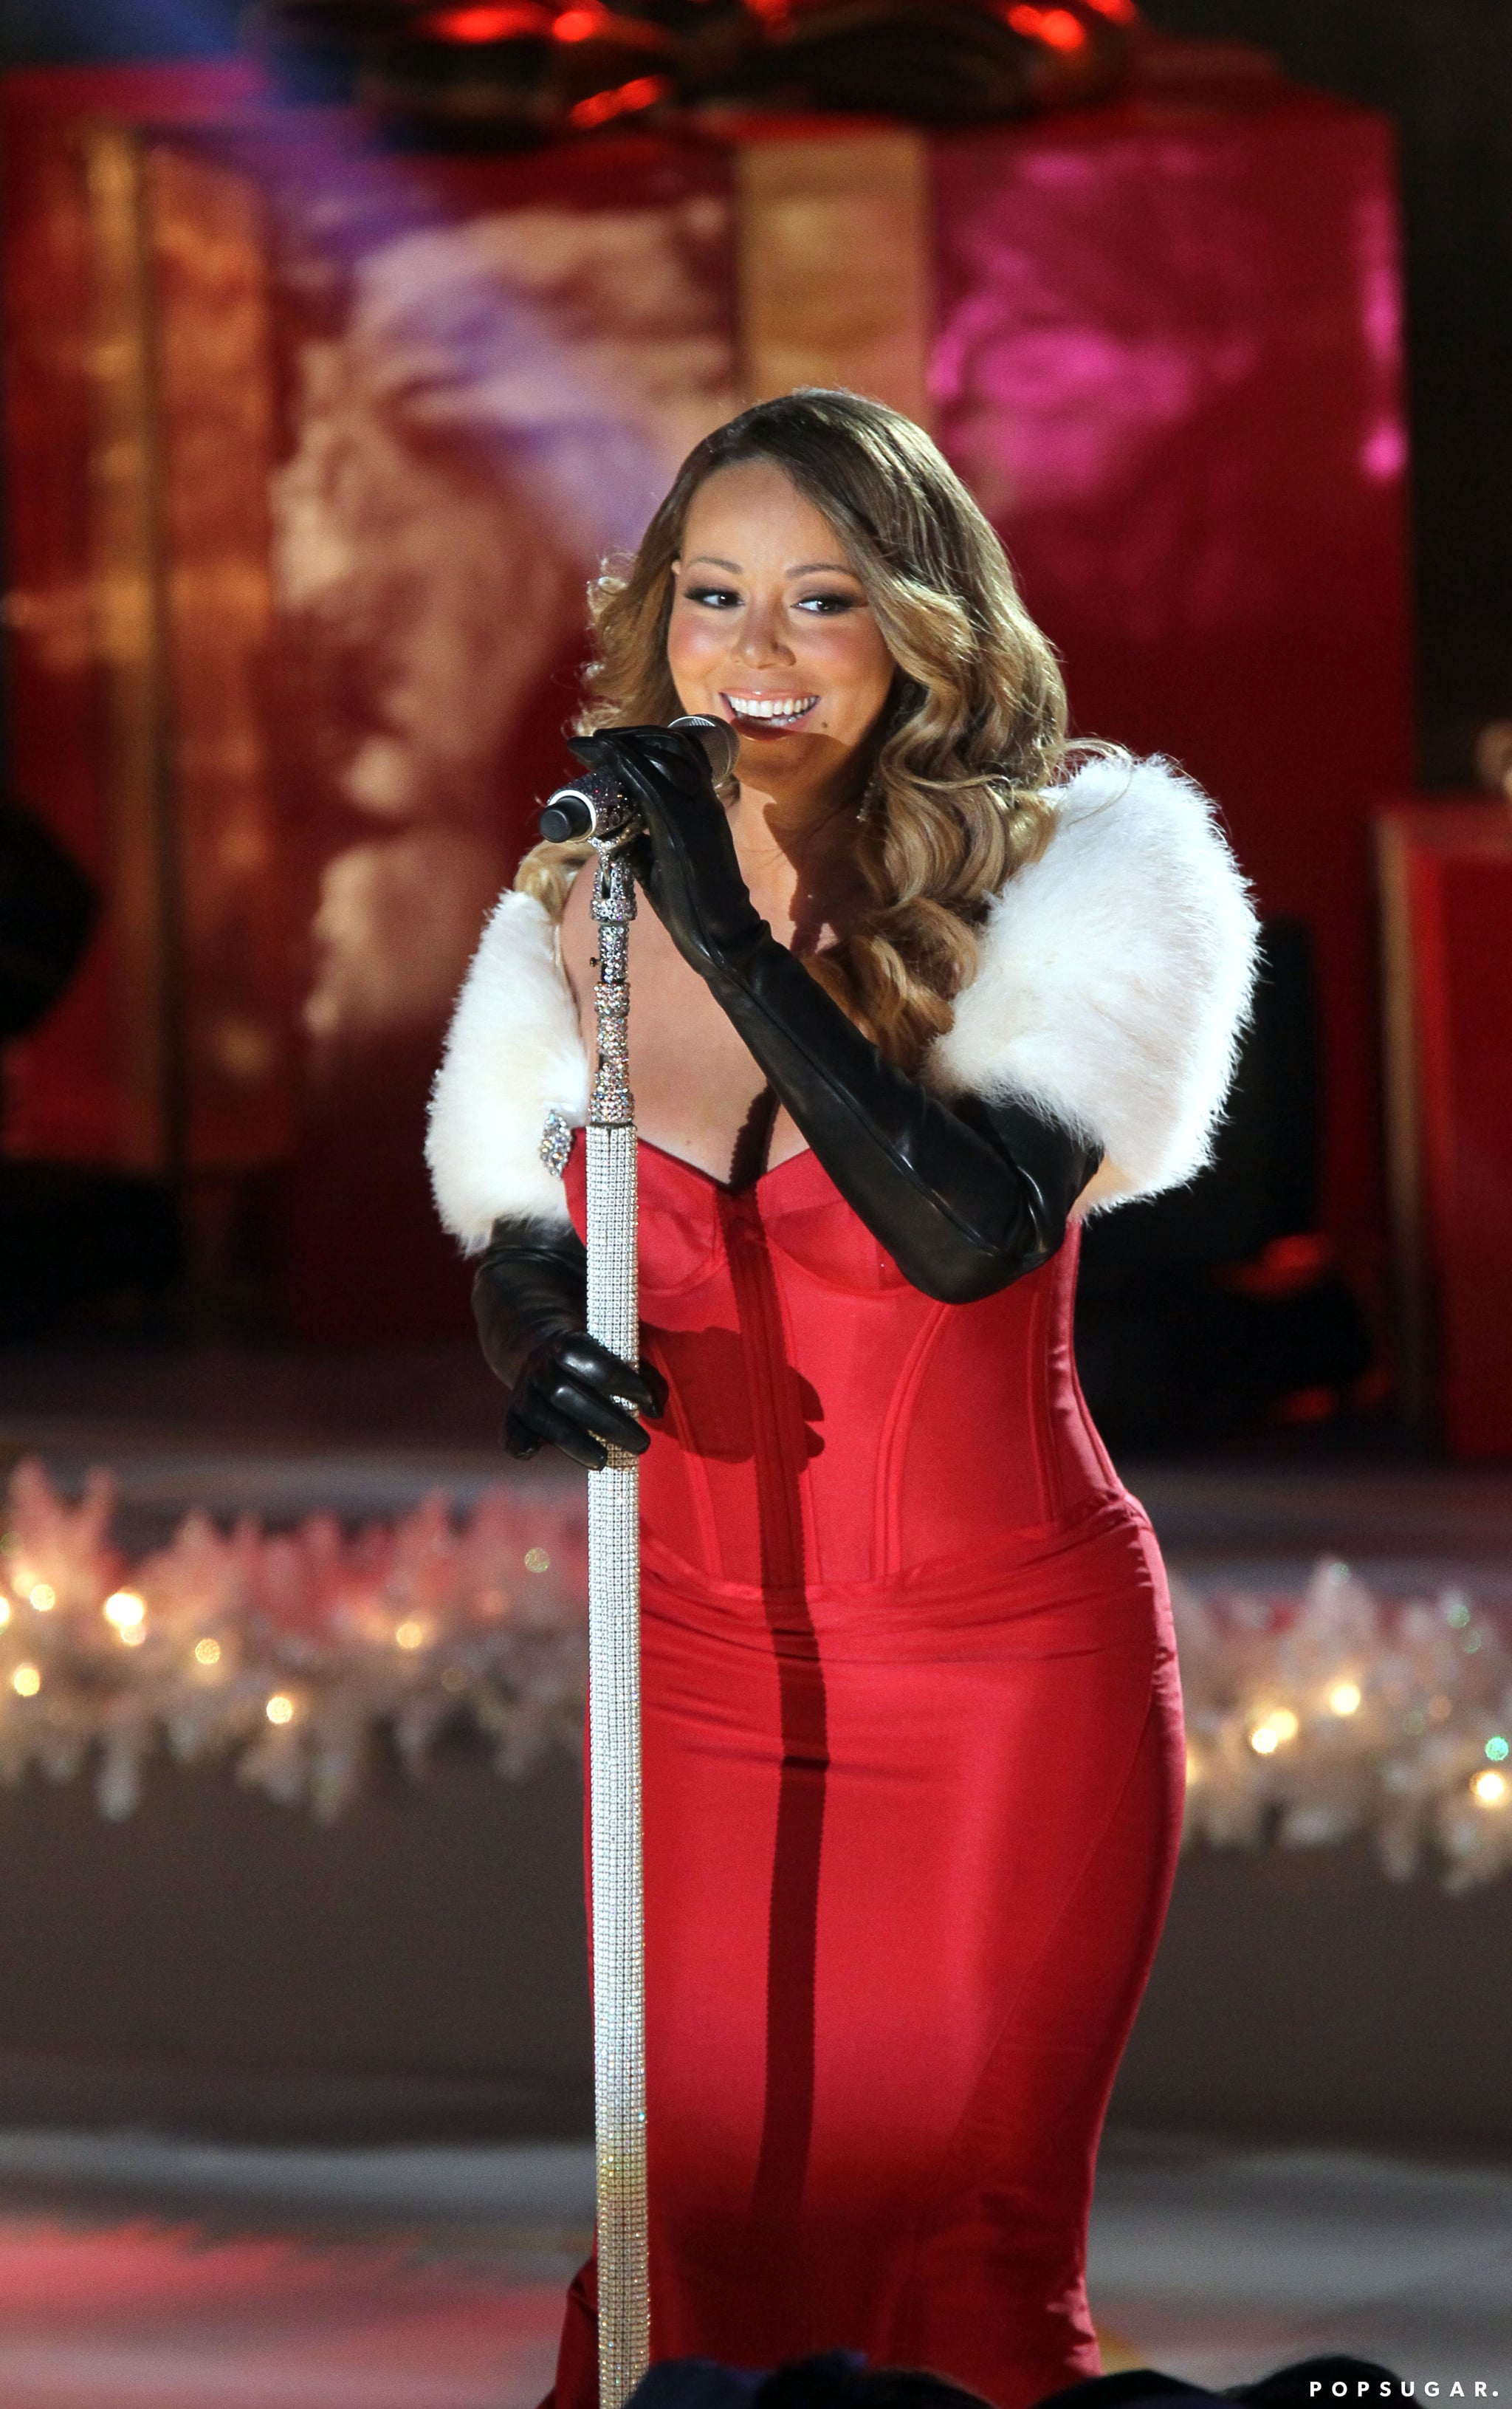 Mariah Carey rocked her best holiday attire during a performance at the Rockefeller Center tree lighting ceremony.